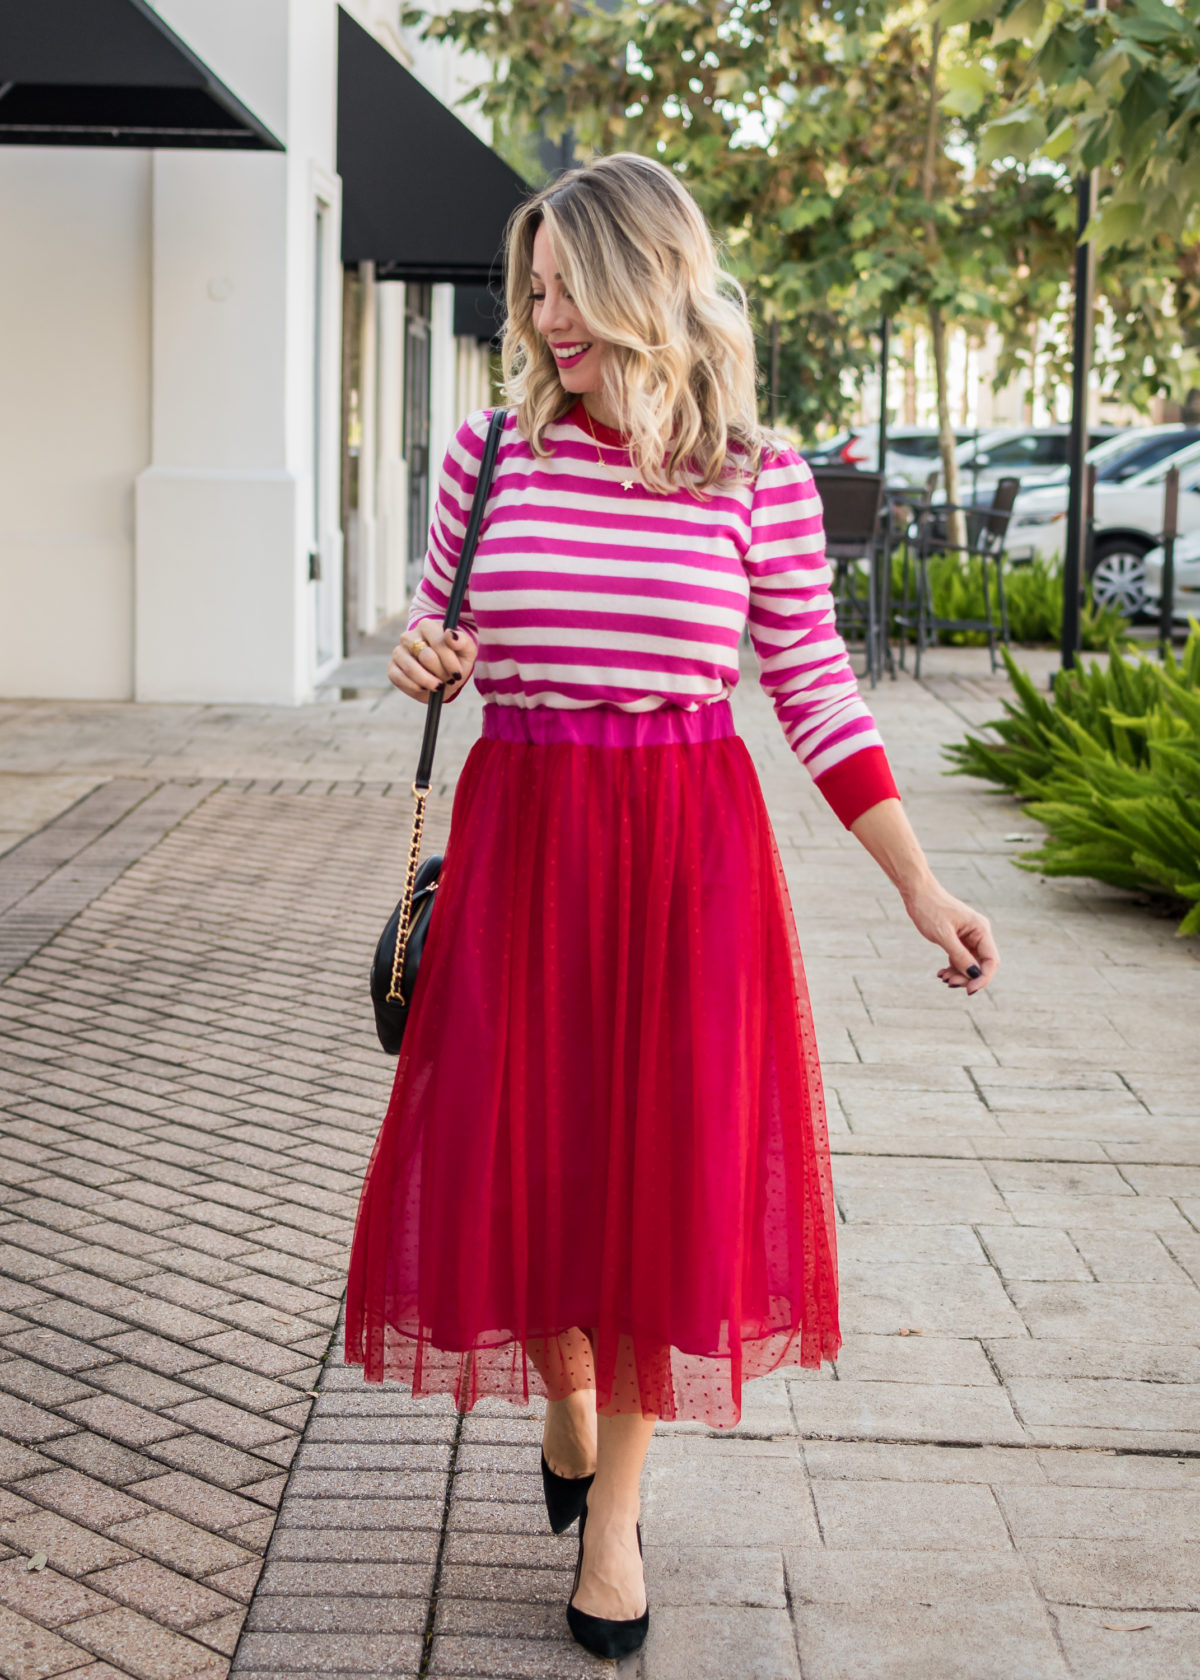 Gibson Fashion, Striped Sweater, Tulle Skirt, Black Heels, Crossbody Bag